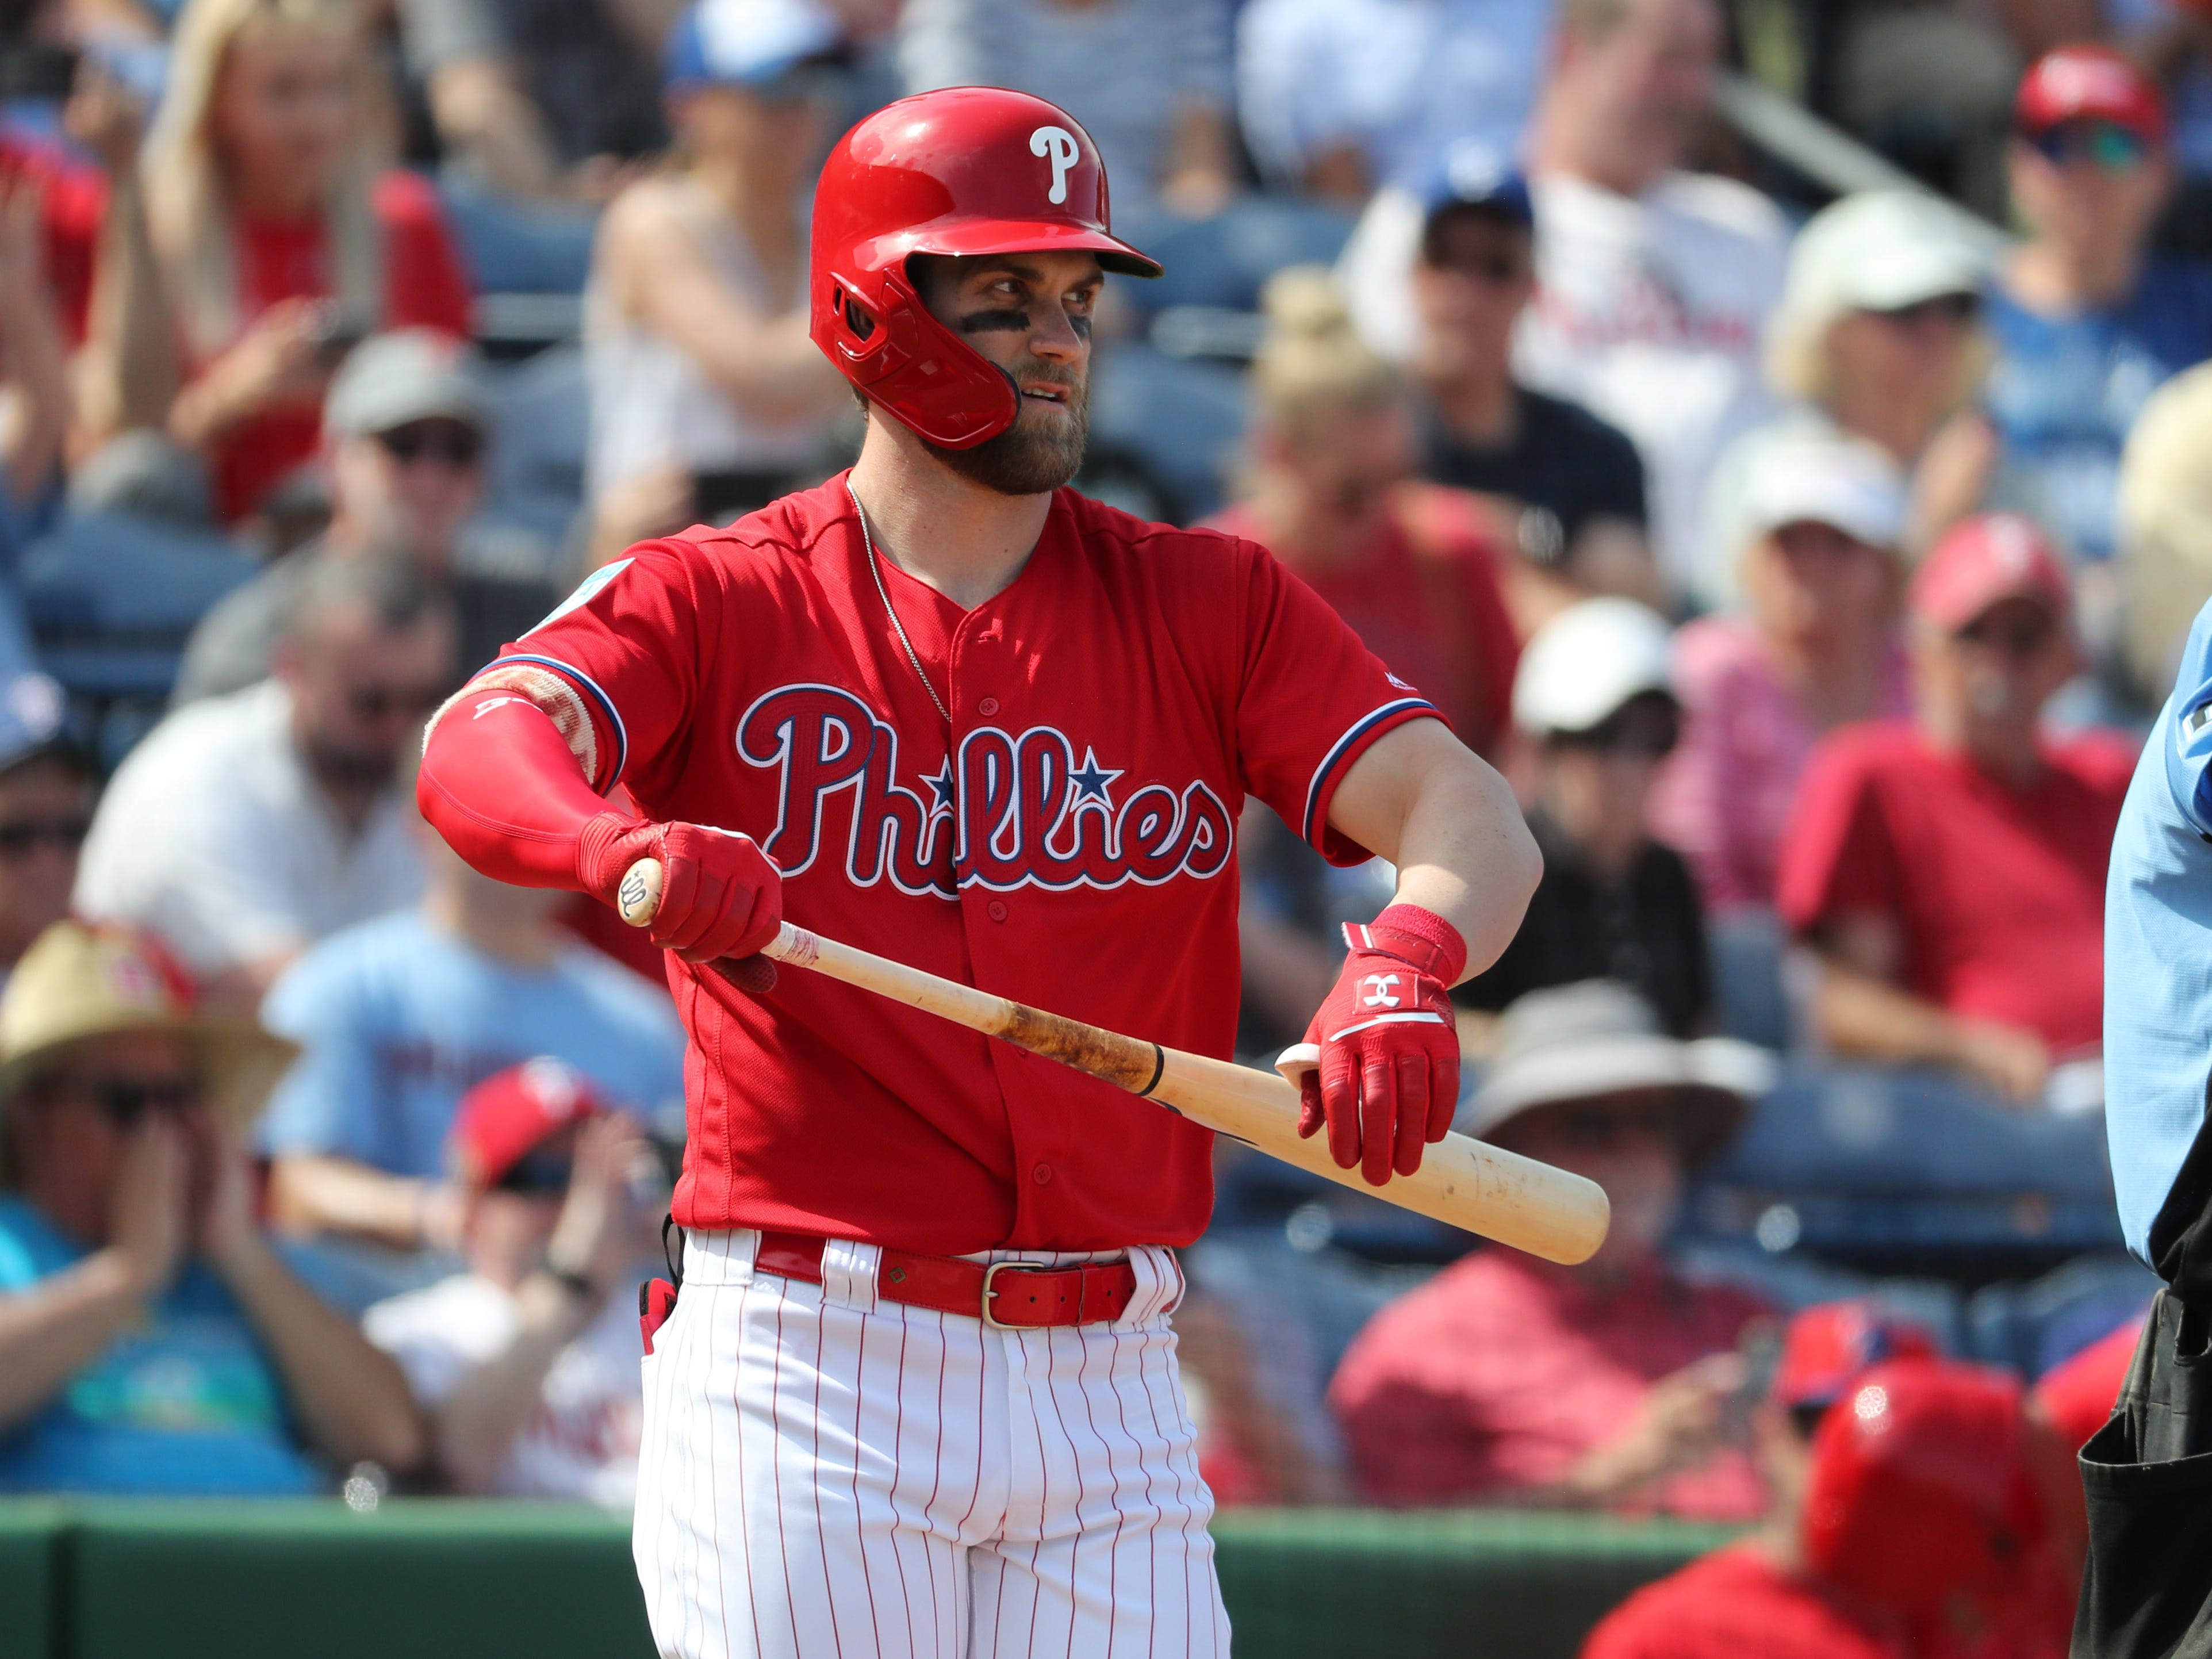 March 9: Bryce Harper makes his spring training debut with the Phillies.